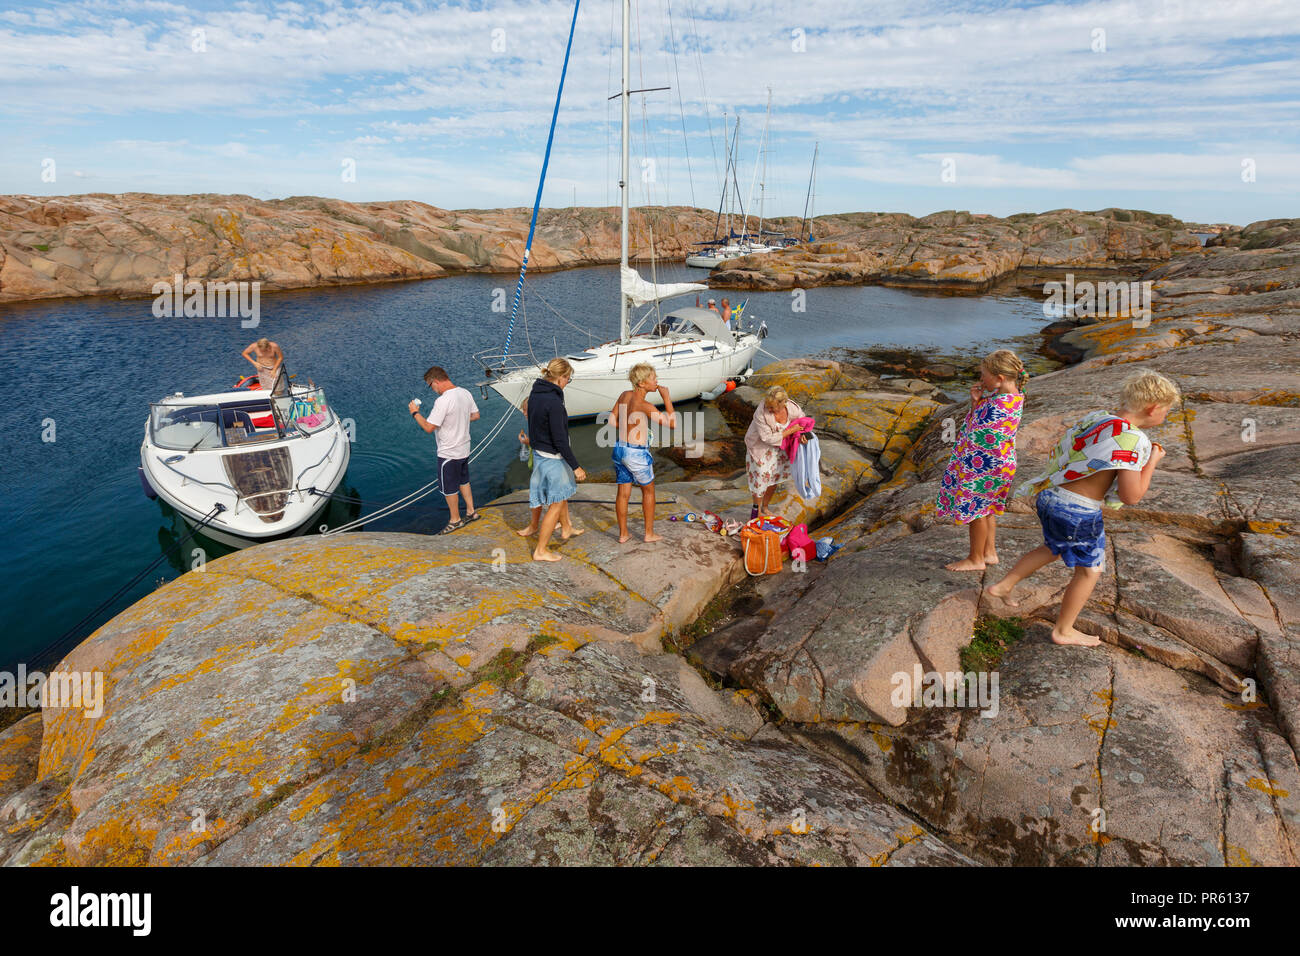 Full activity in the bath bay with rocks, - Stock Image